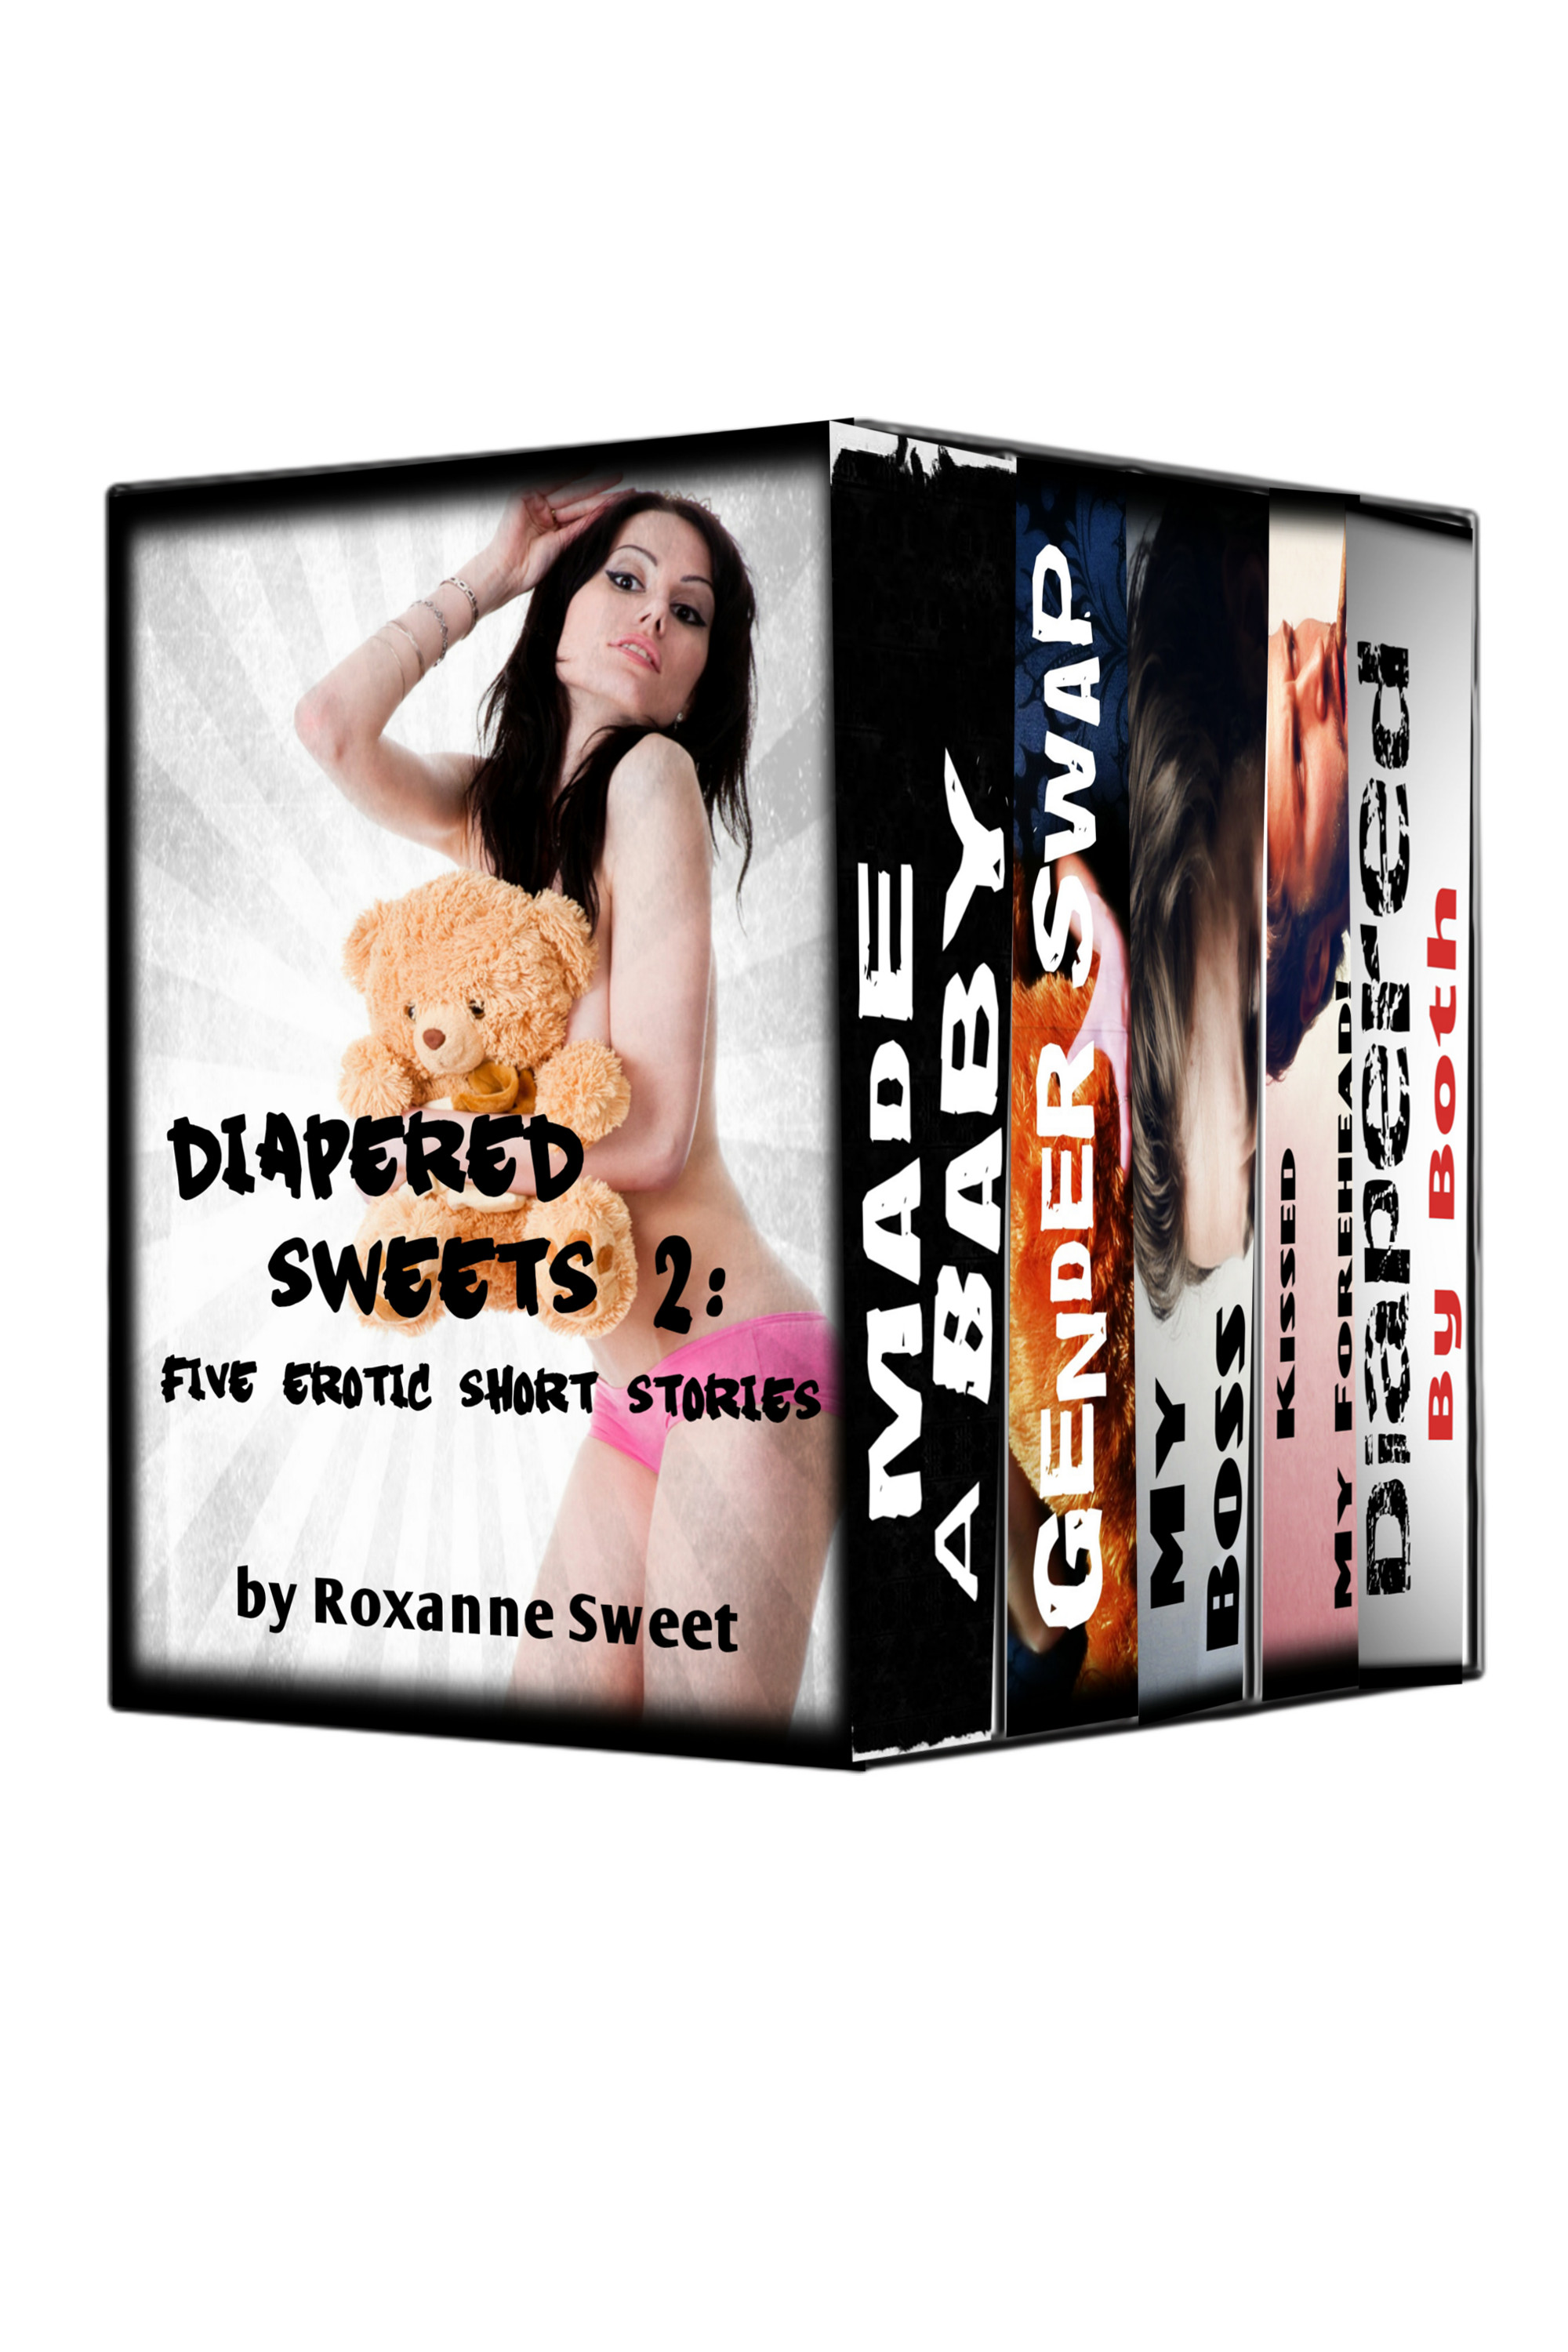 Roxanne Sweet - Diapered Sweets 2: Five Erotic Short Stories